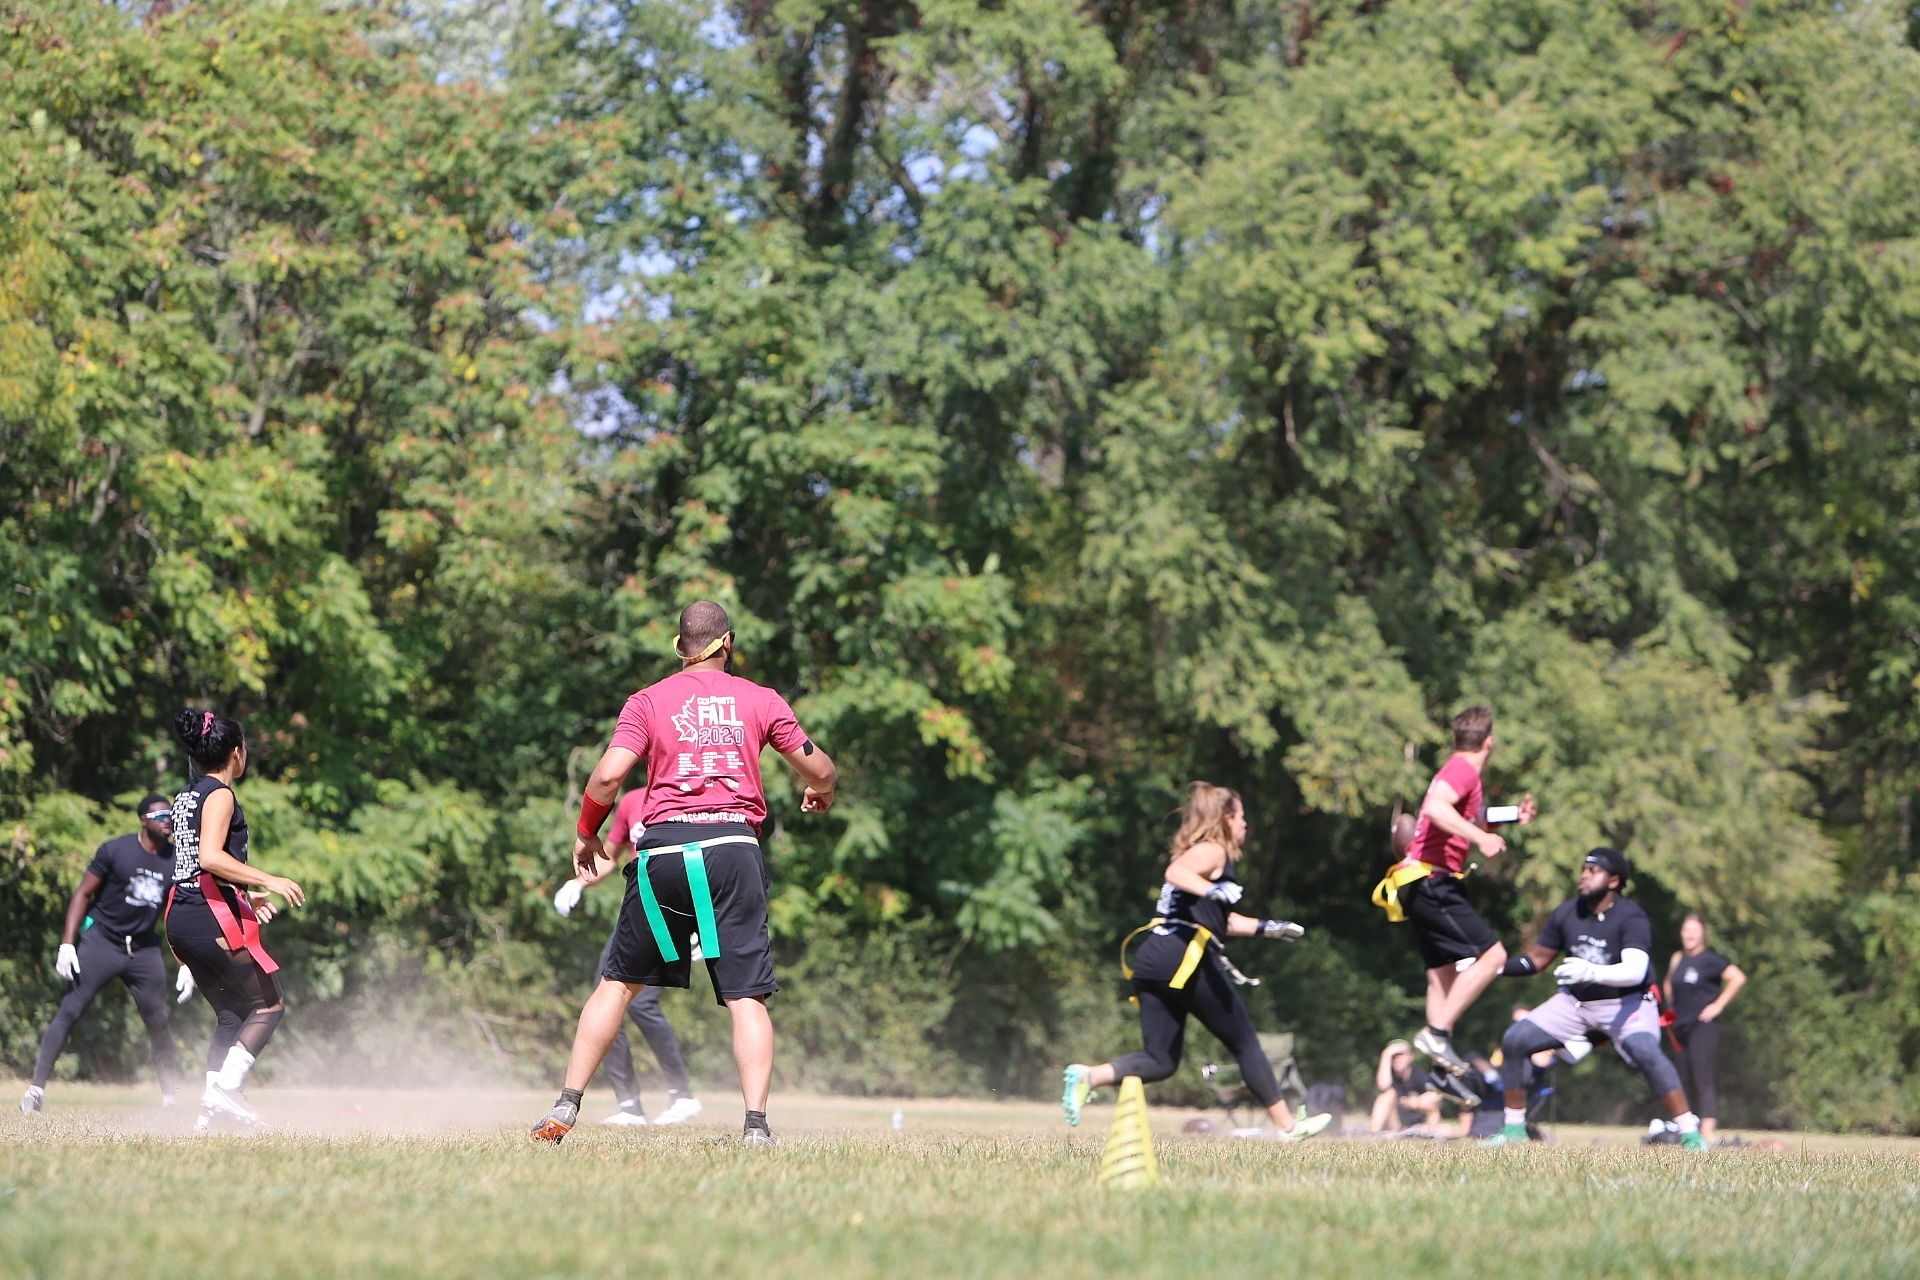 Sunday Flag Football